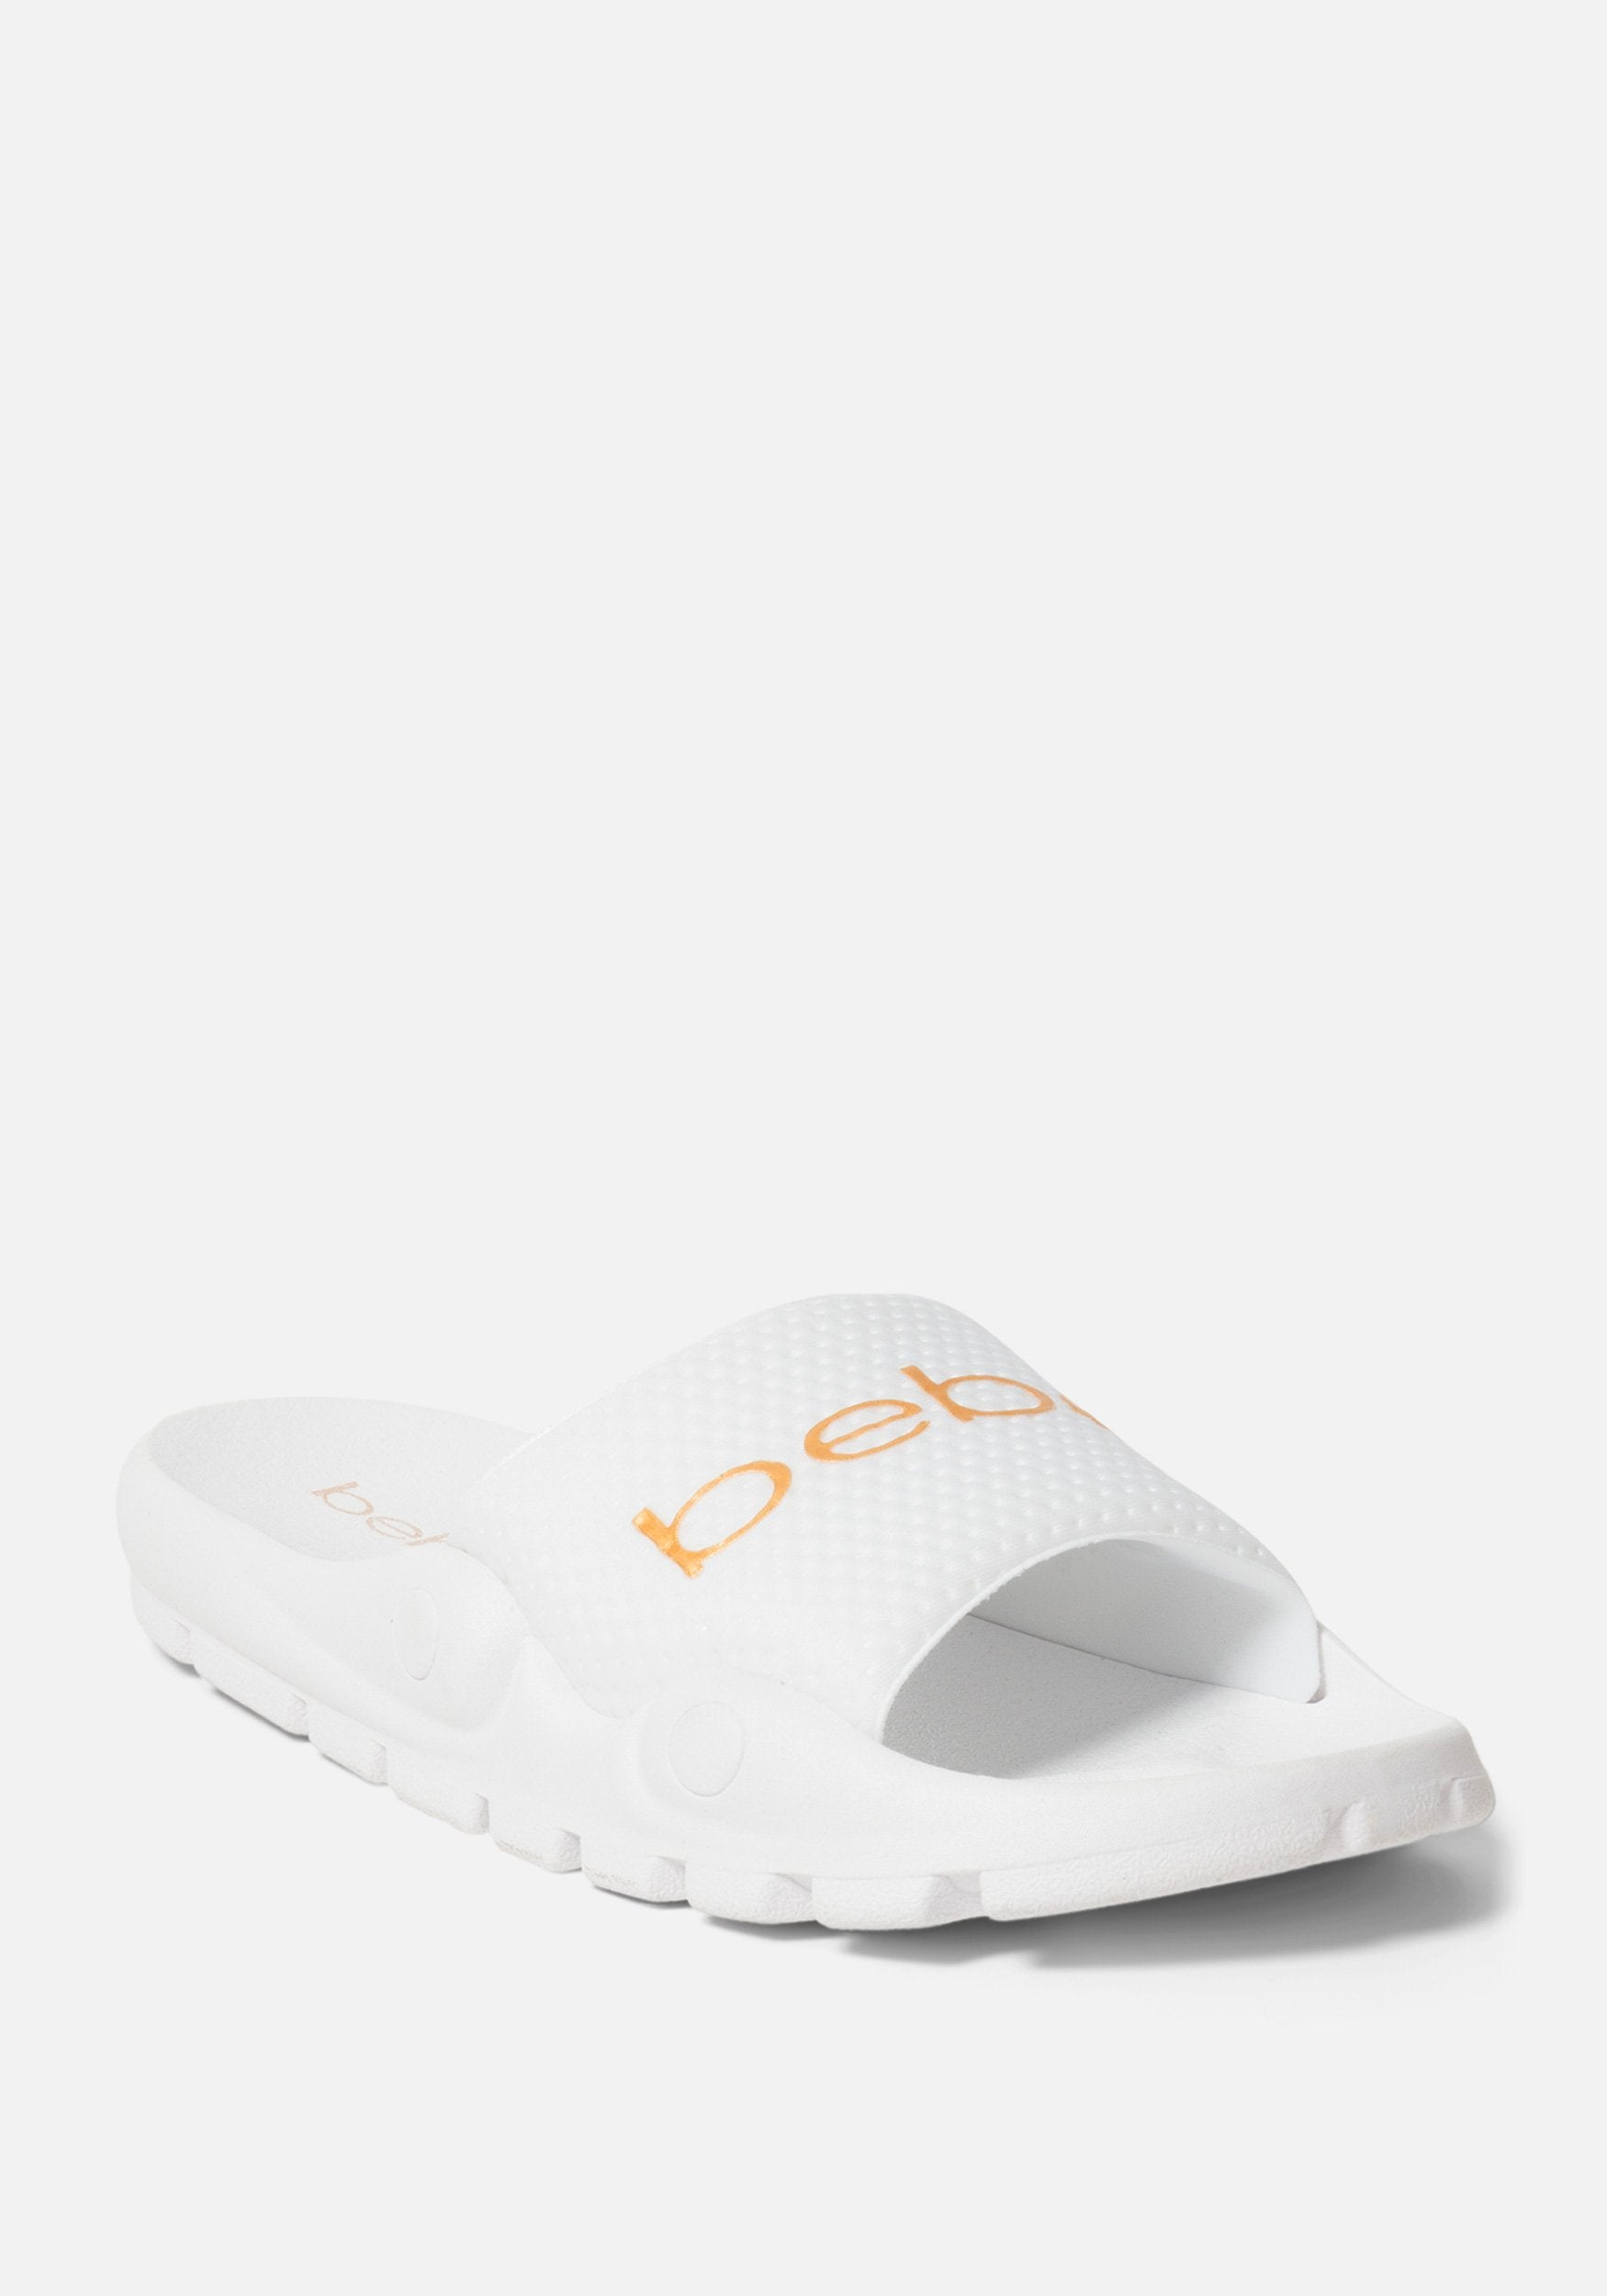 Bebe Women's Nayomie Sporty Slides Shoe, Size 6 in WHITE Synthetic